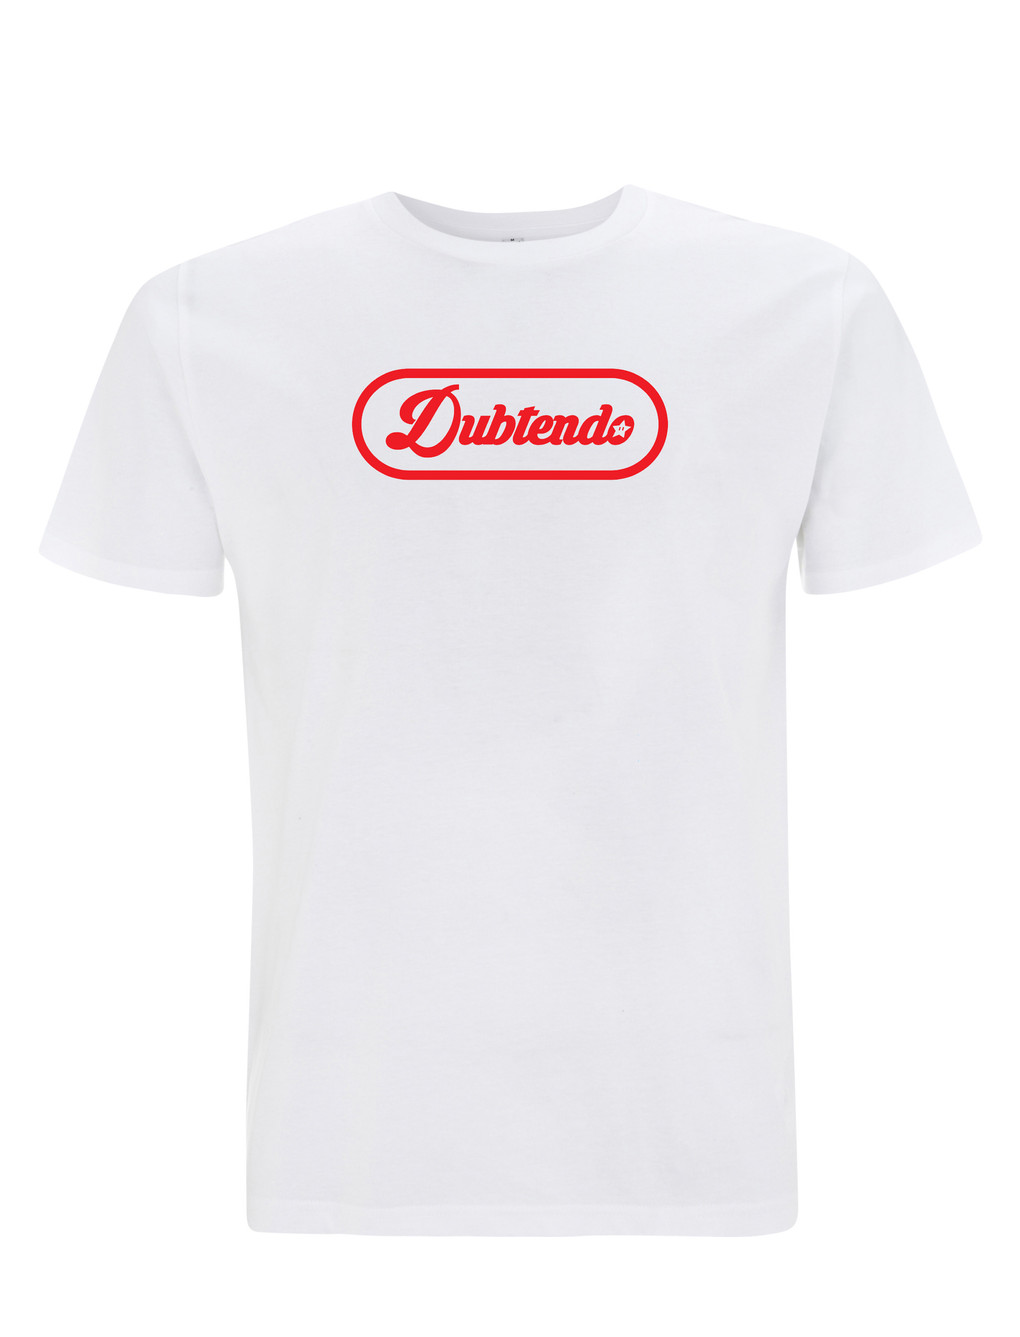 Brand New DUBTENDO TEES In Stock